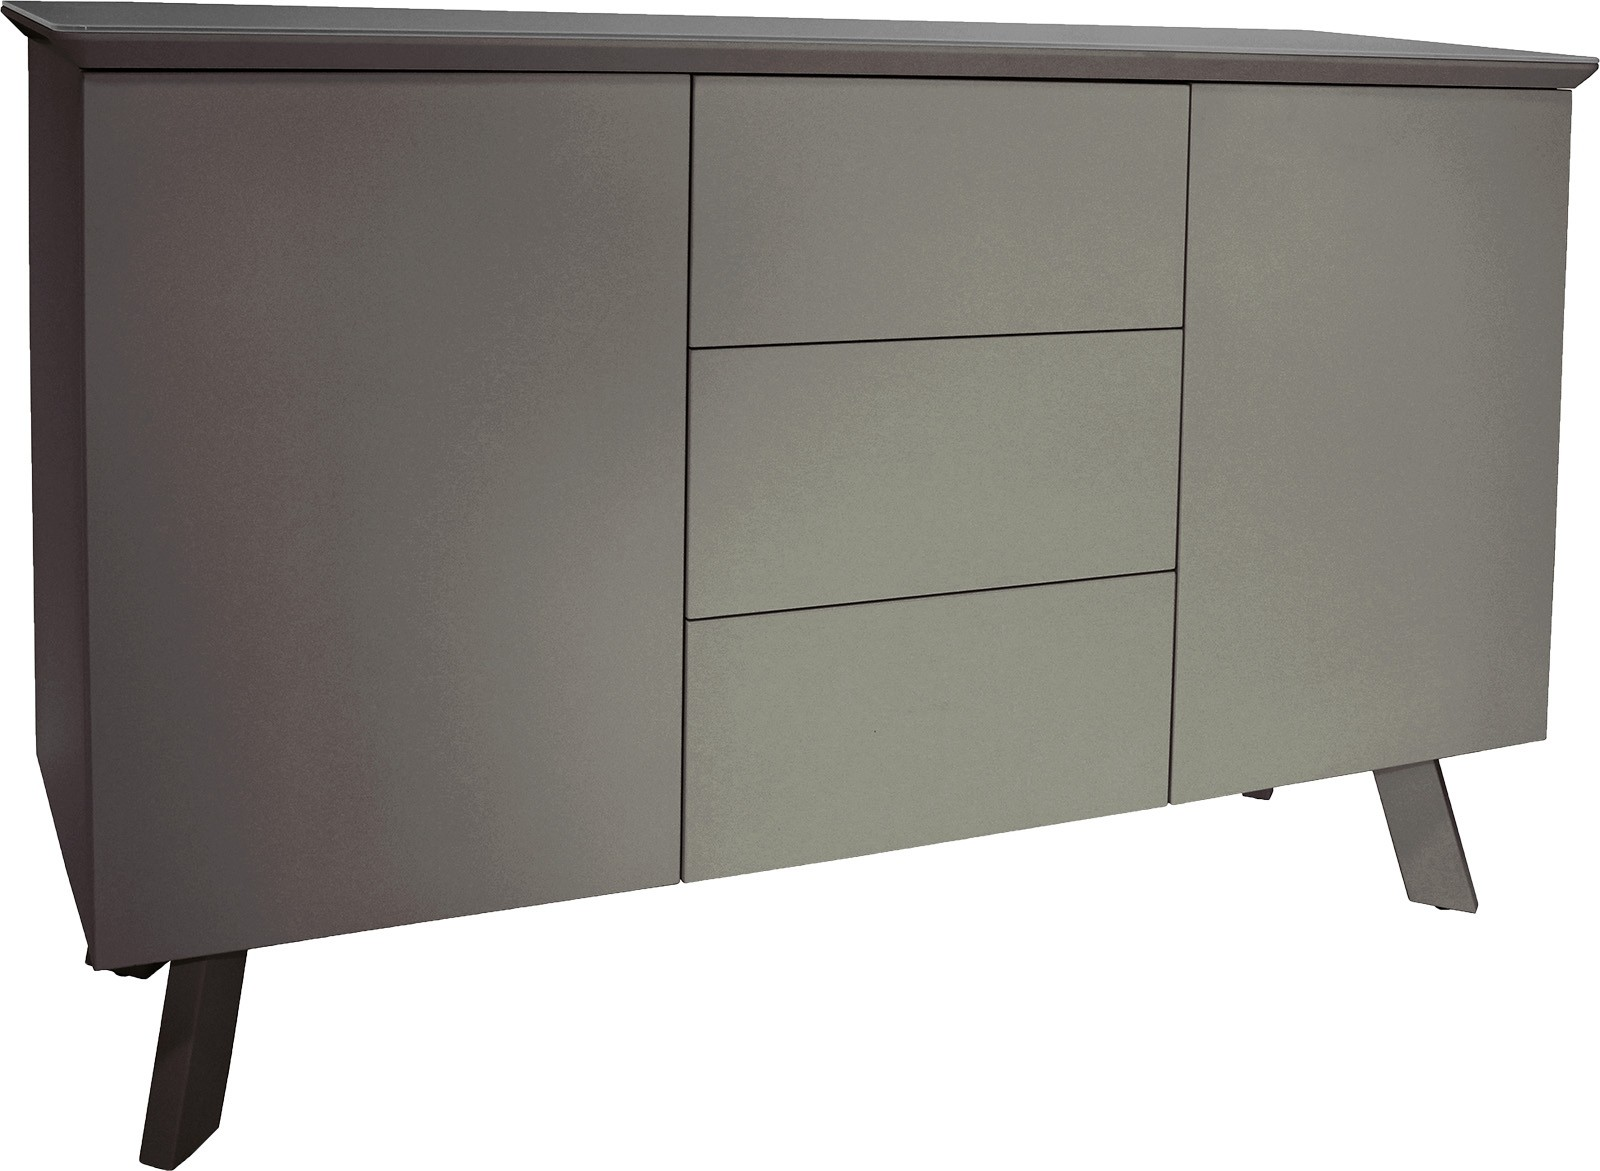 CONTEMPORARY Large Sideboard - Grey